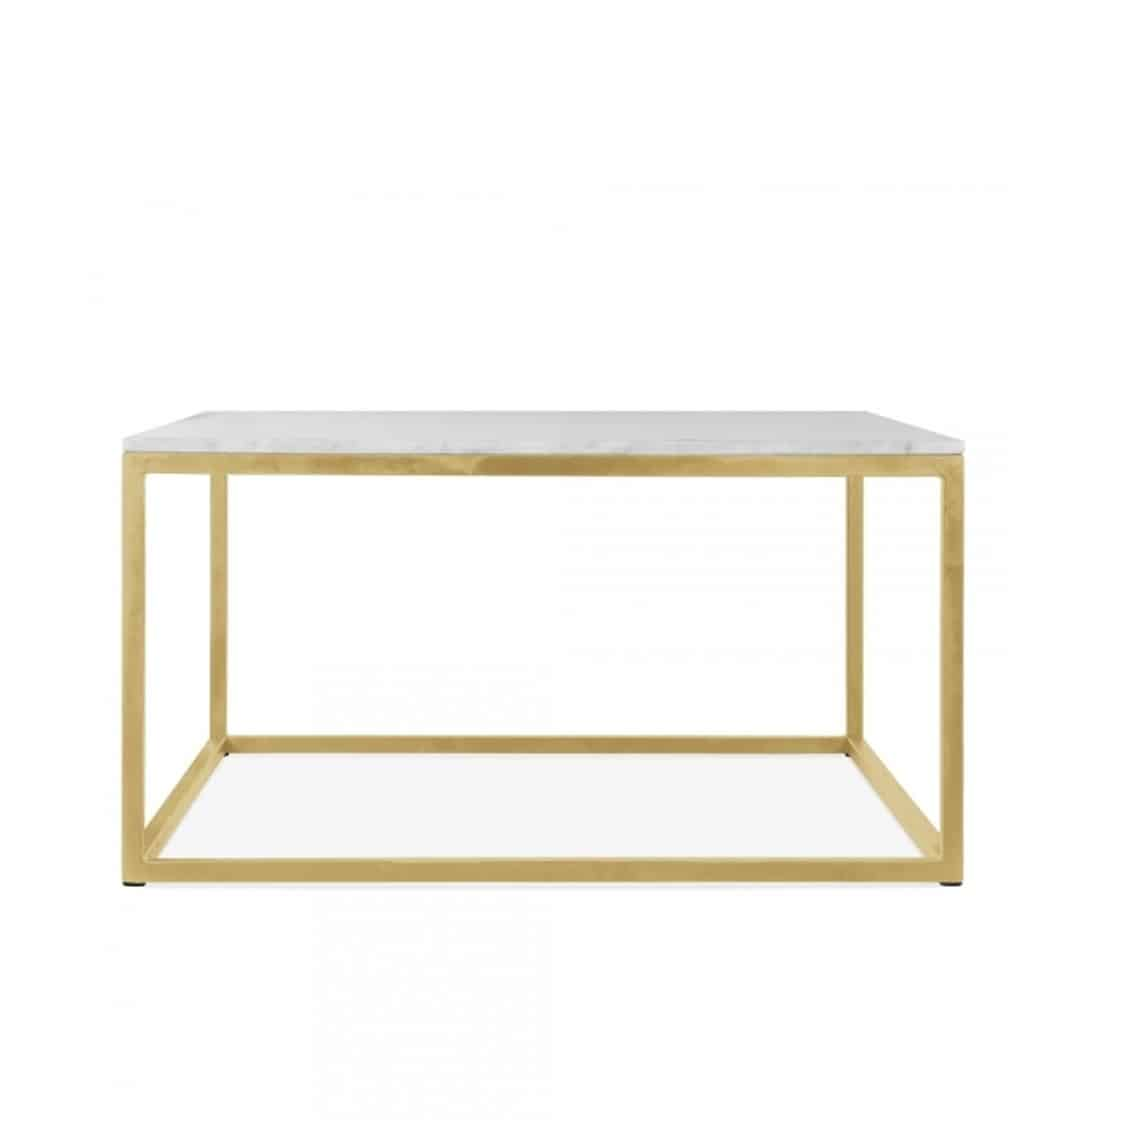 Fountain coffee table SQ DeFrae Contract Furniture brass frame